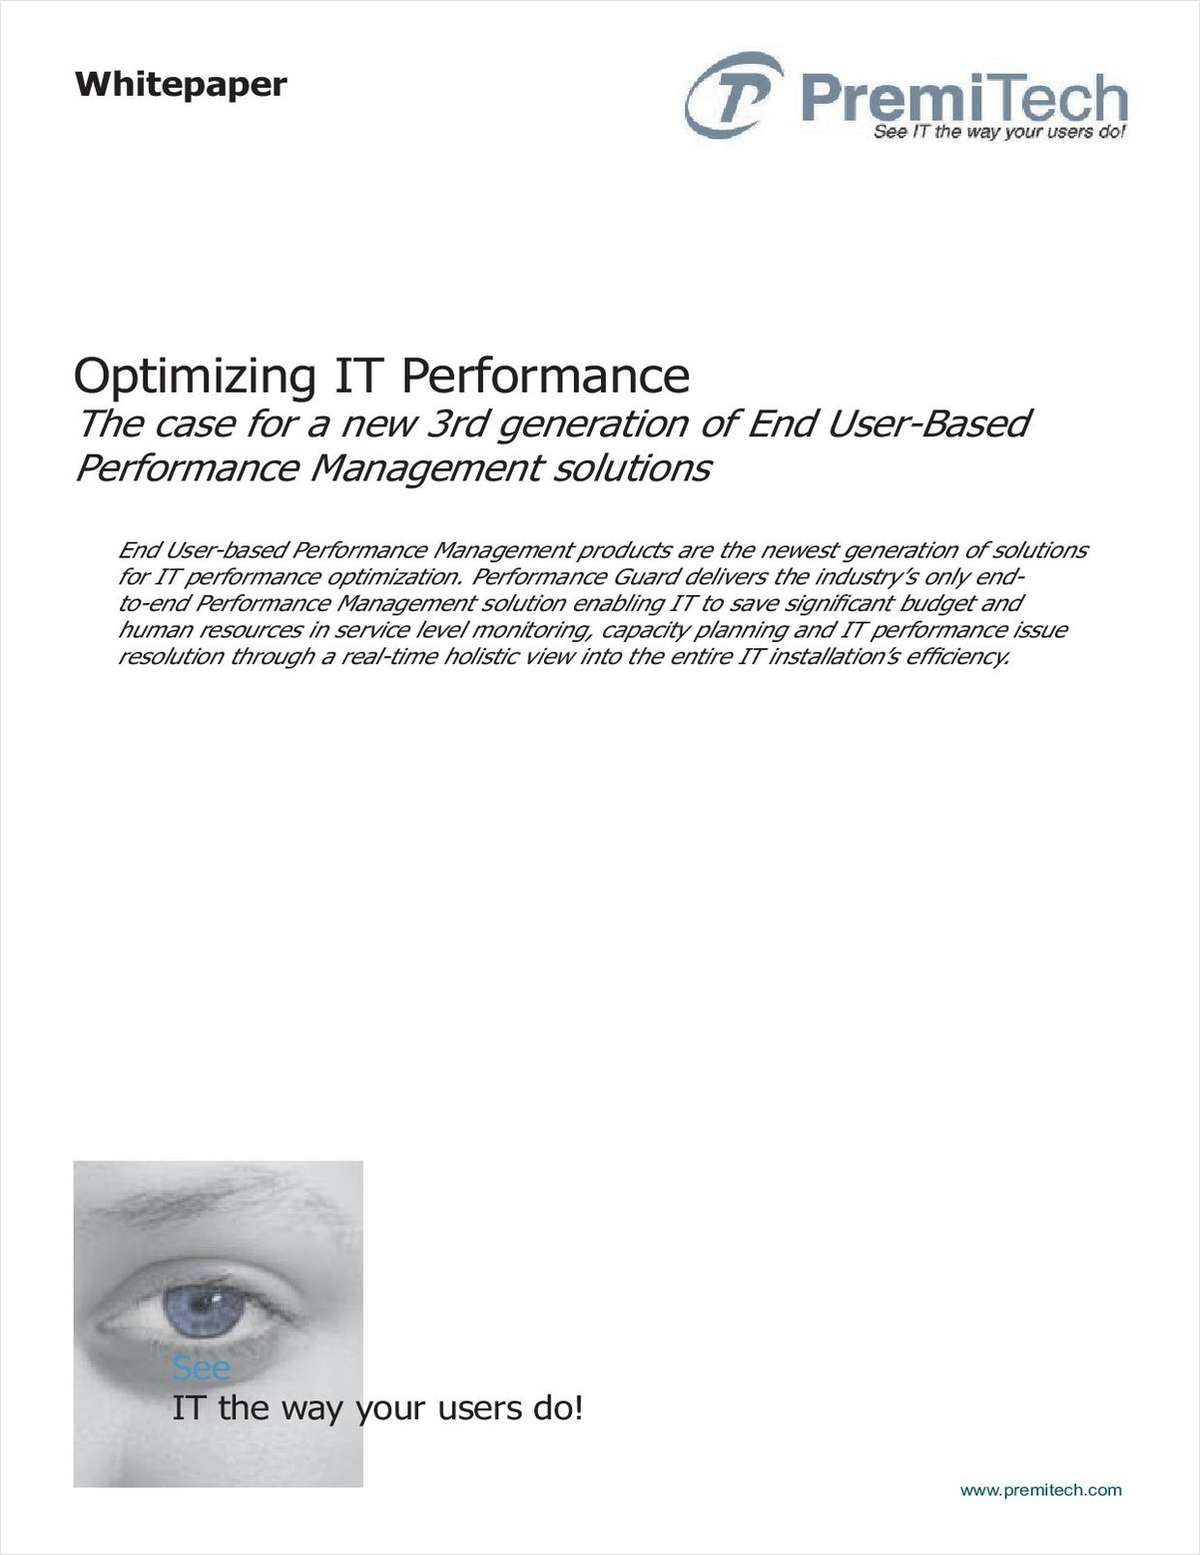 How to Optimize IT Performance with End User-Based Solutions